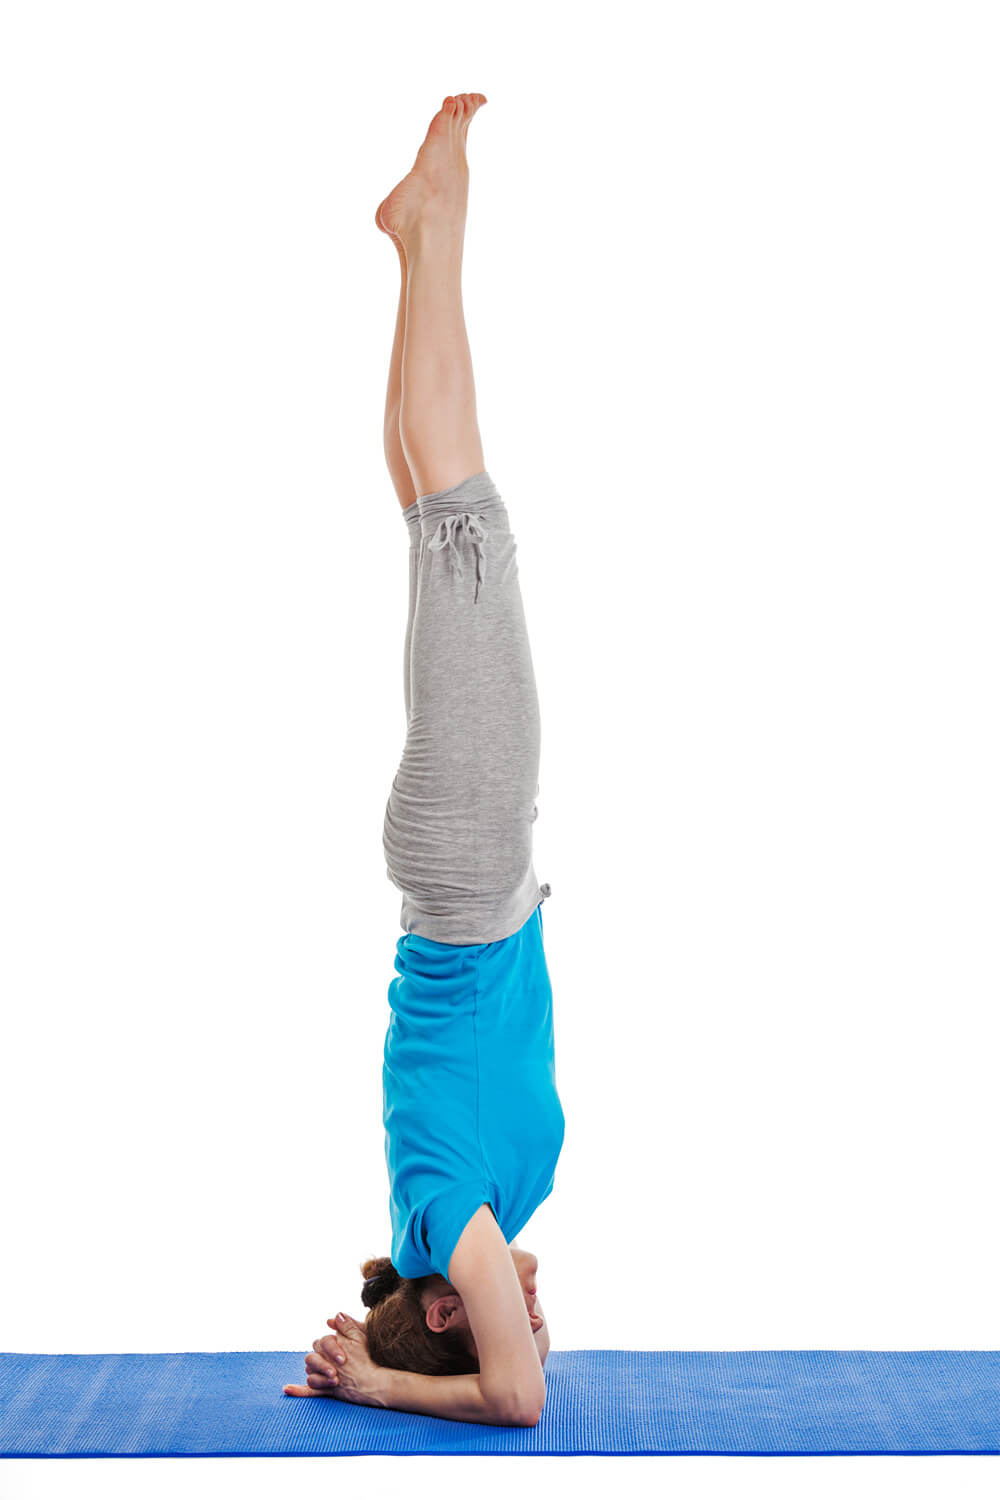 Teres Major Muscles in Headstand